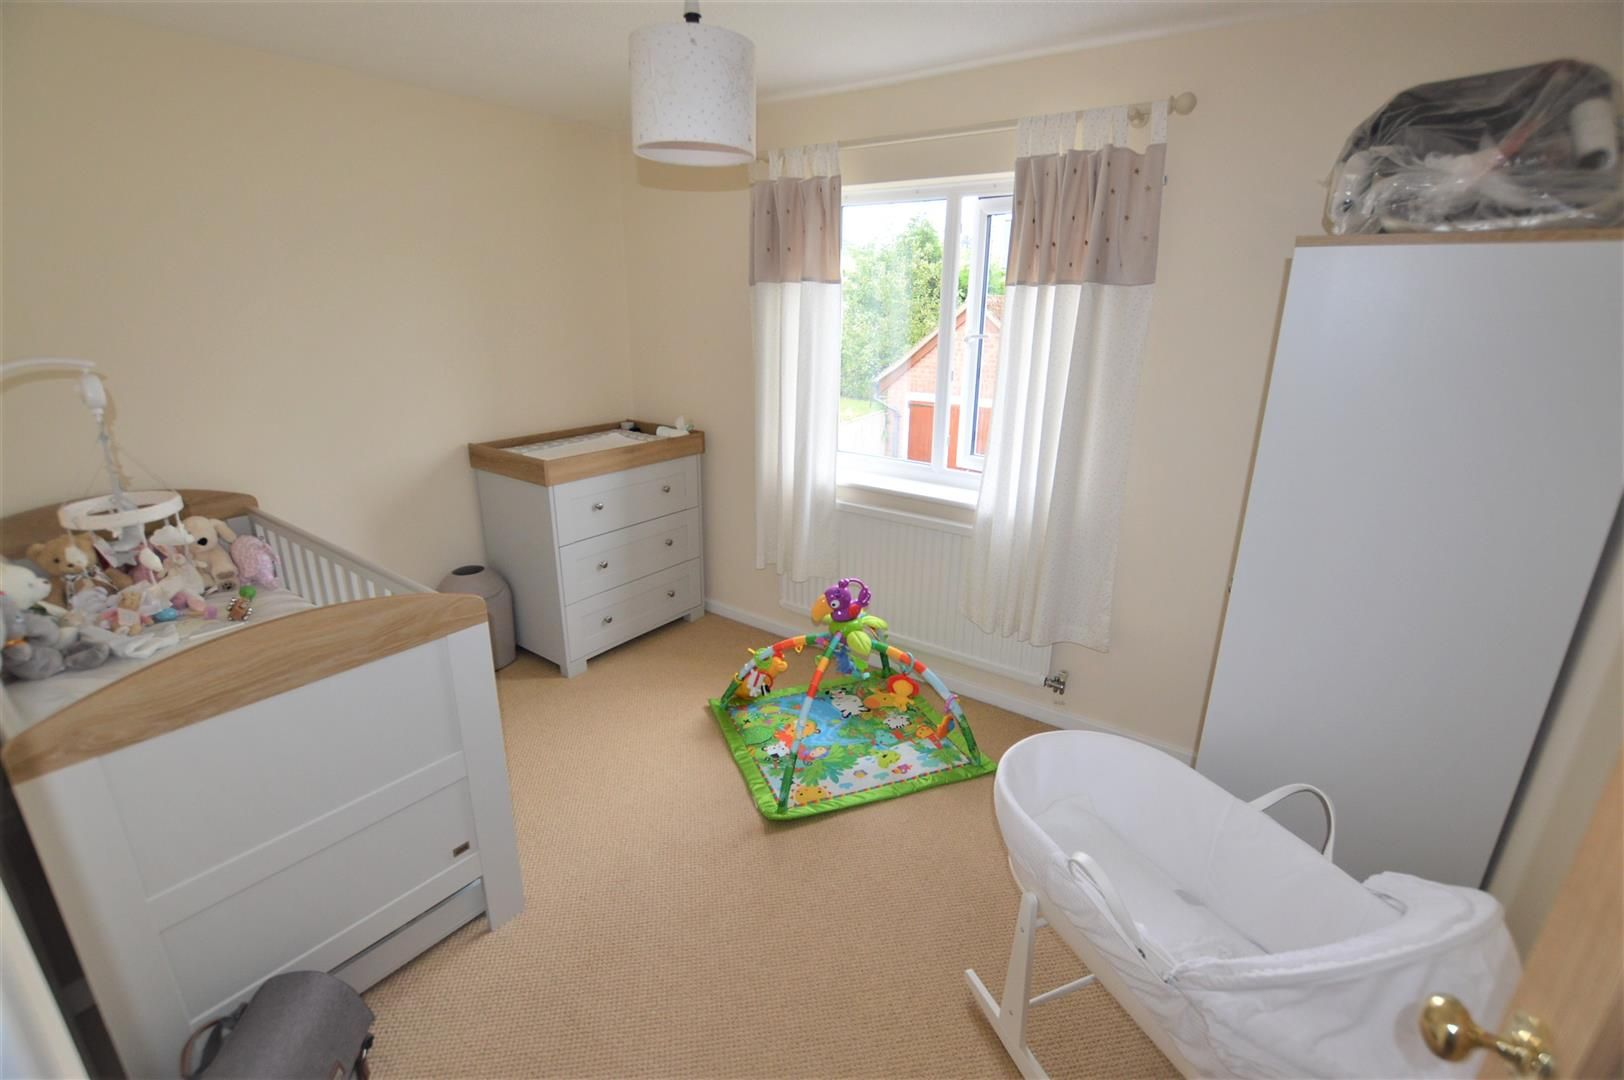 4 bed semi-detached for sale in Luston  - Property Image 7